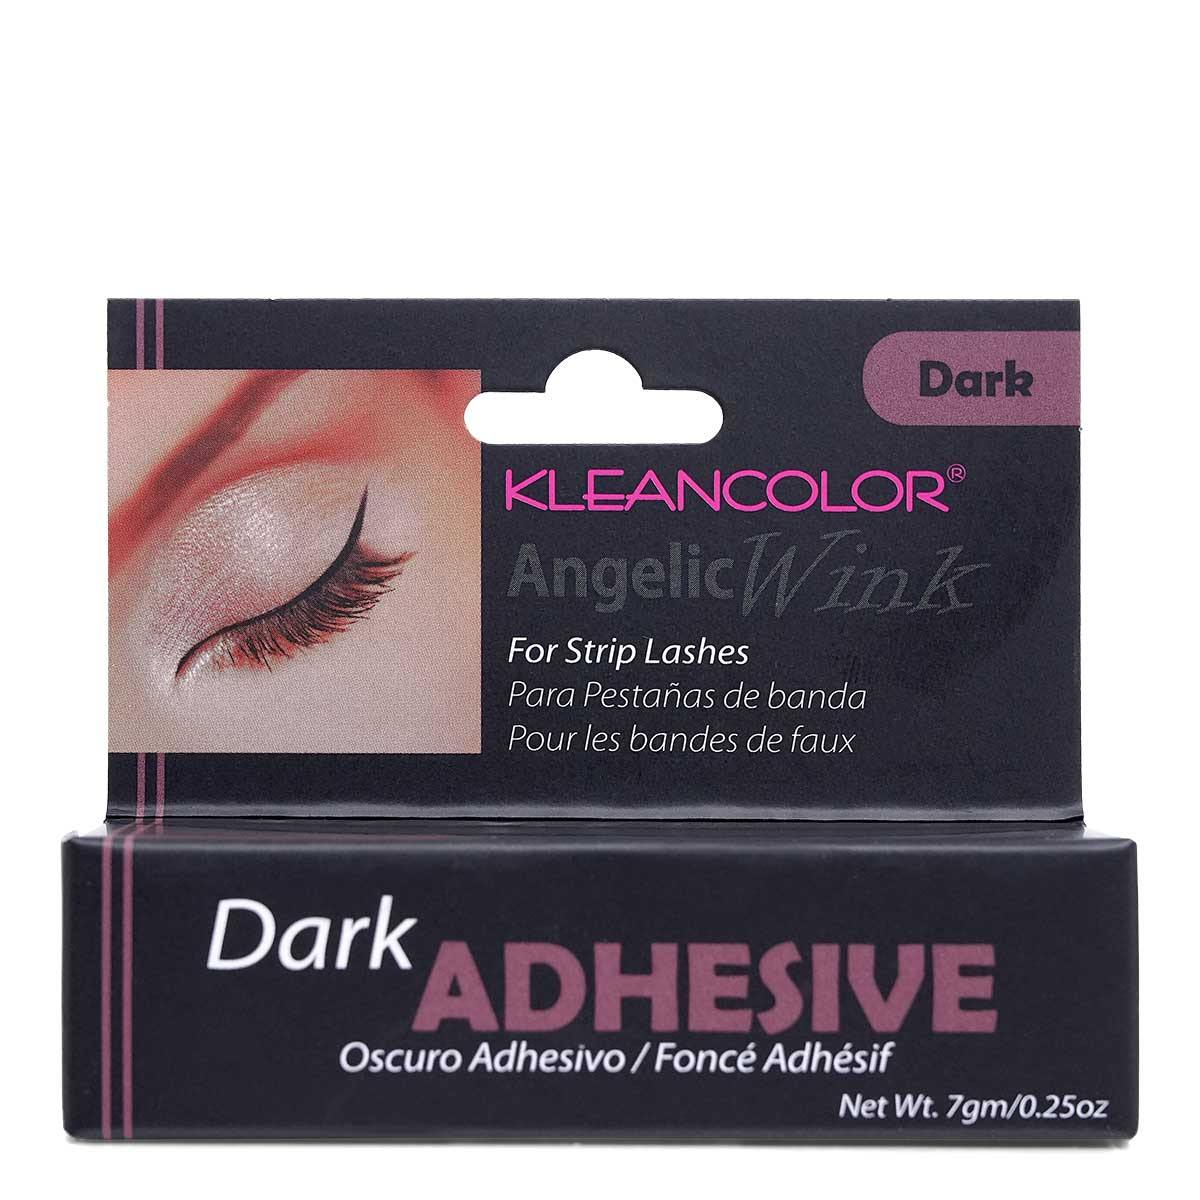 KLEANCOLOR Angelic Wink Eyelash Adhesive Dark (EA7D) - Display of 24 units